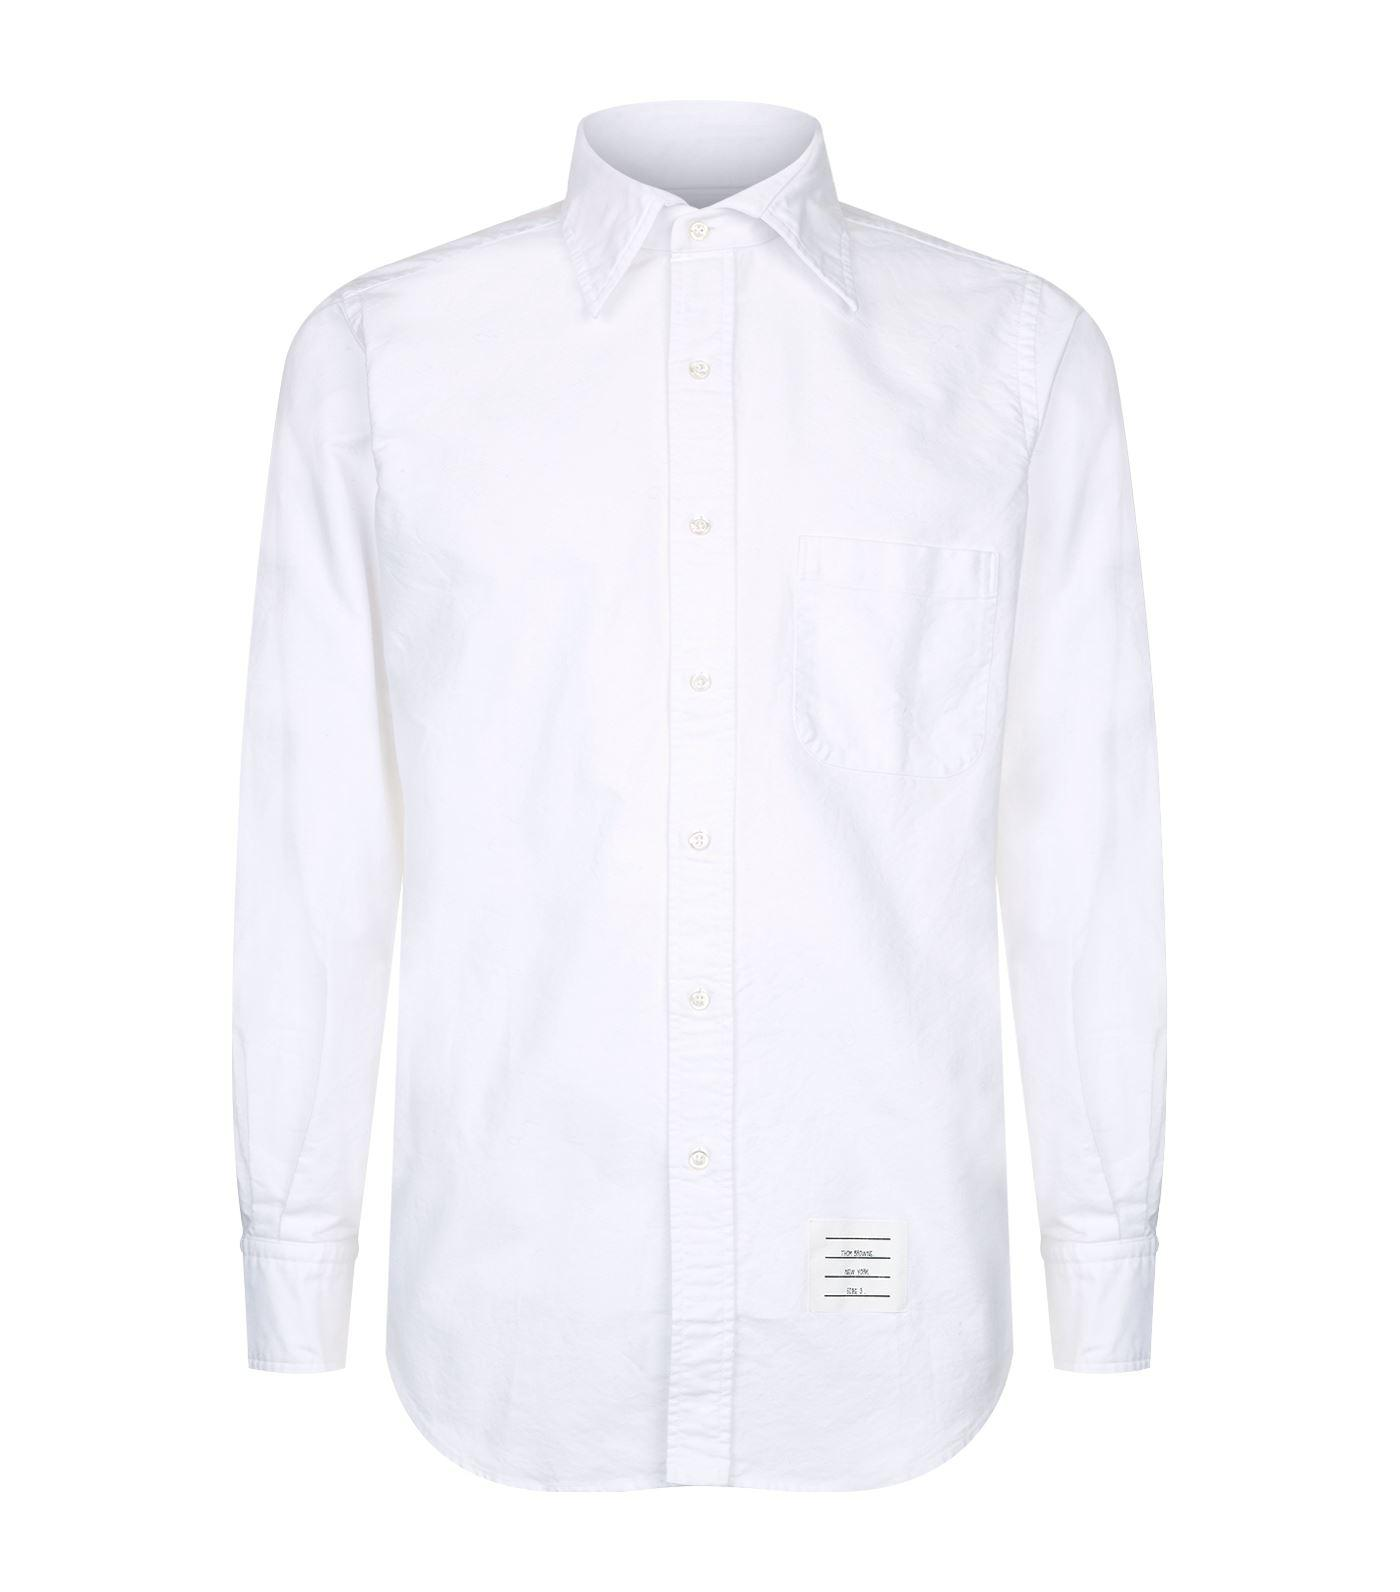 Lyst Thom Browne Detachable Collar Oxford Shirt In White For Men